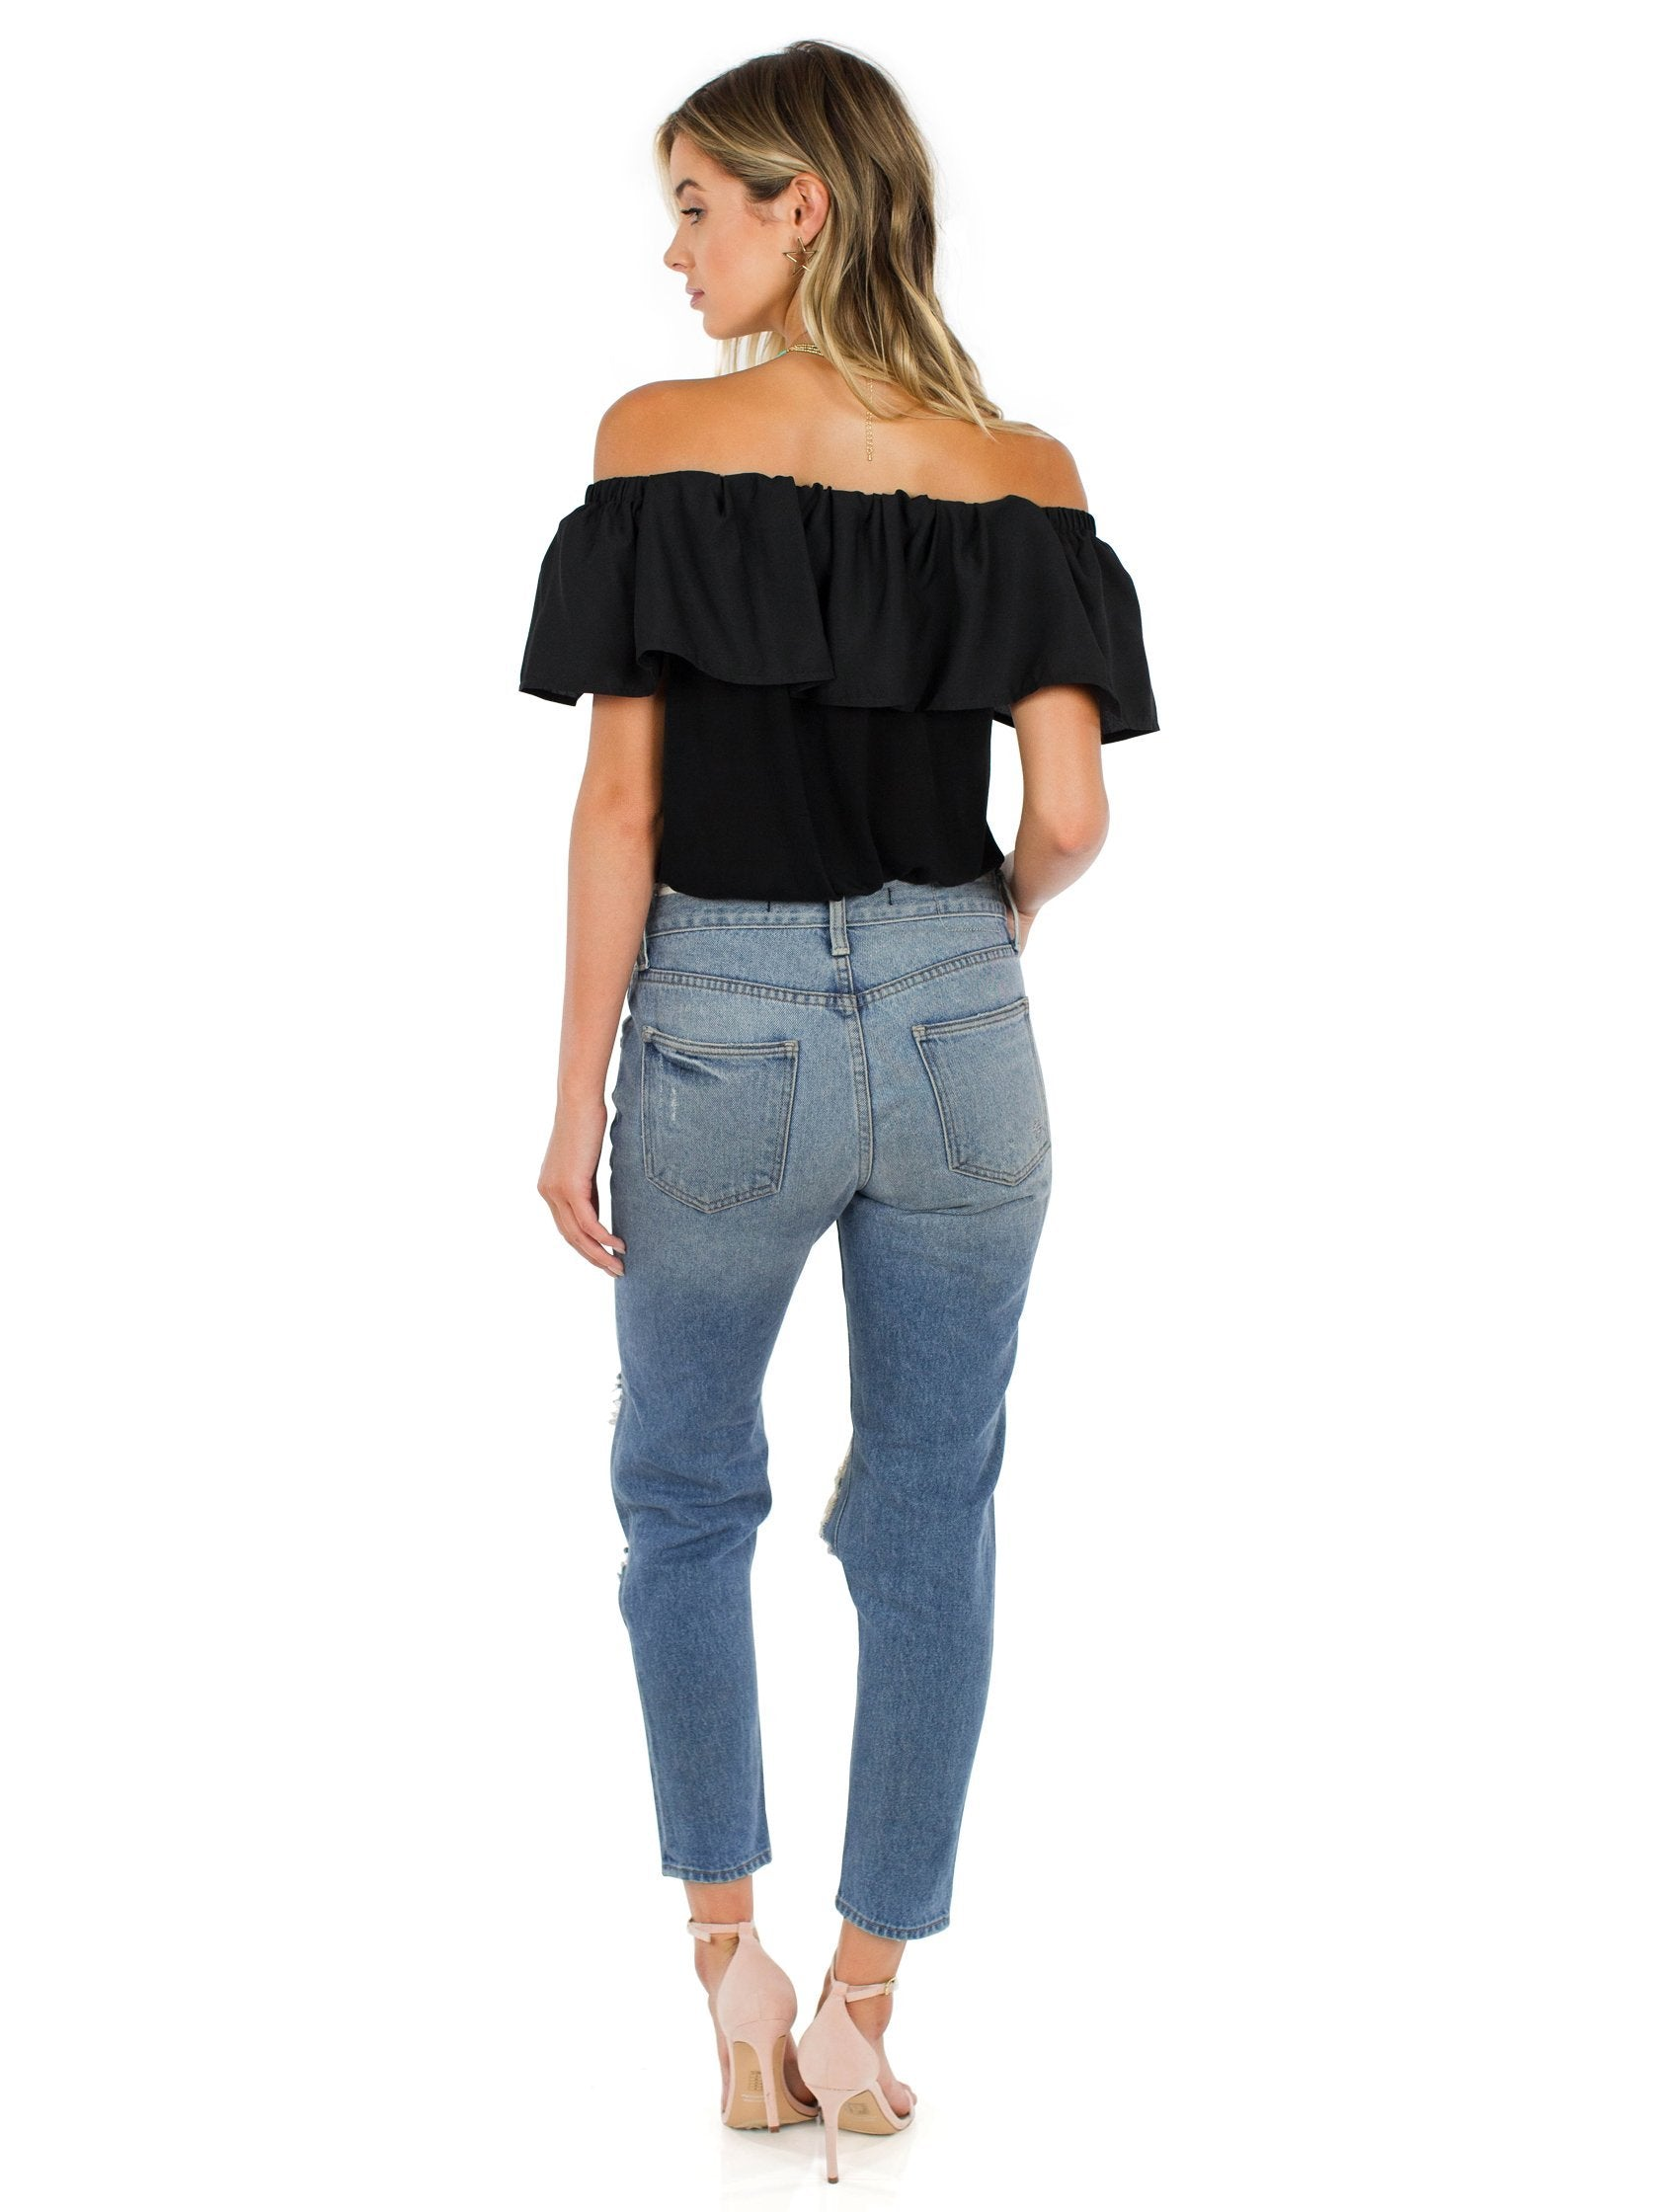 Girl wearing a top rental from French Connection called Polly Plains Off-the-shoulder Top